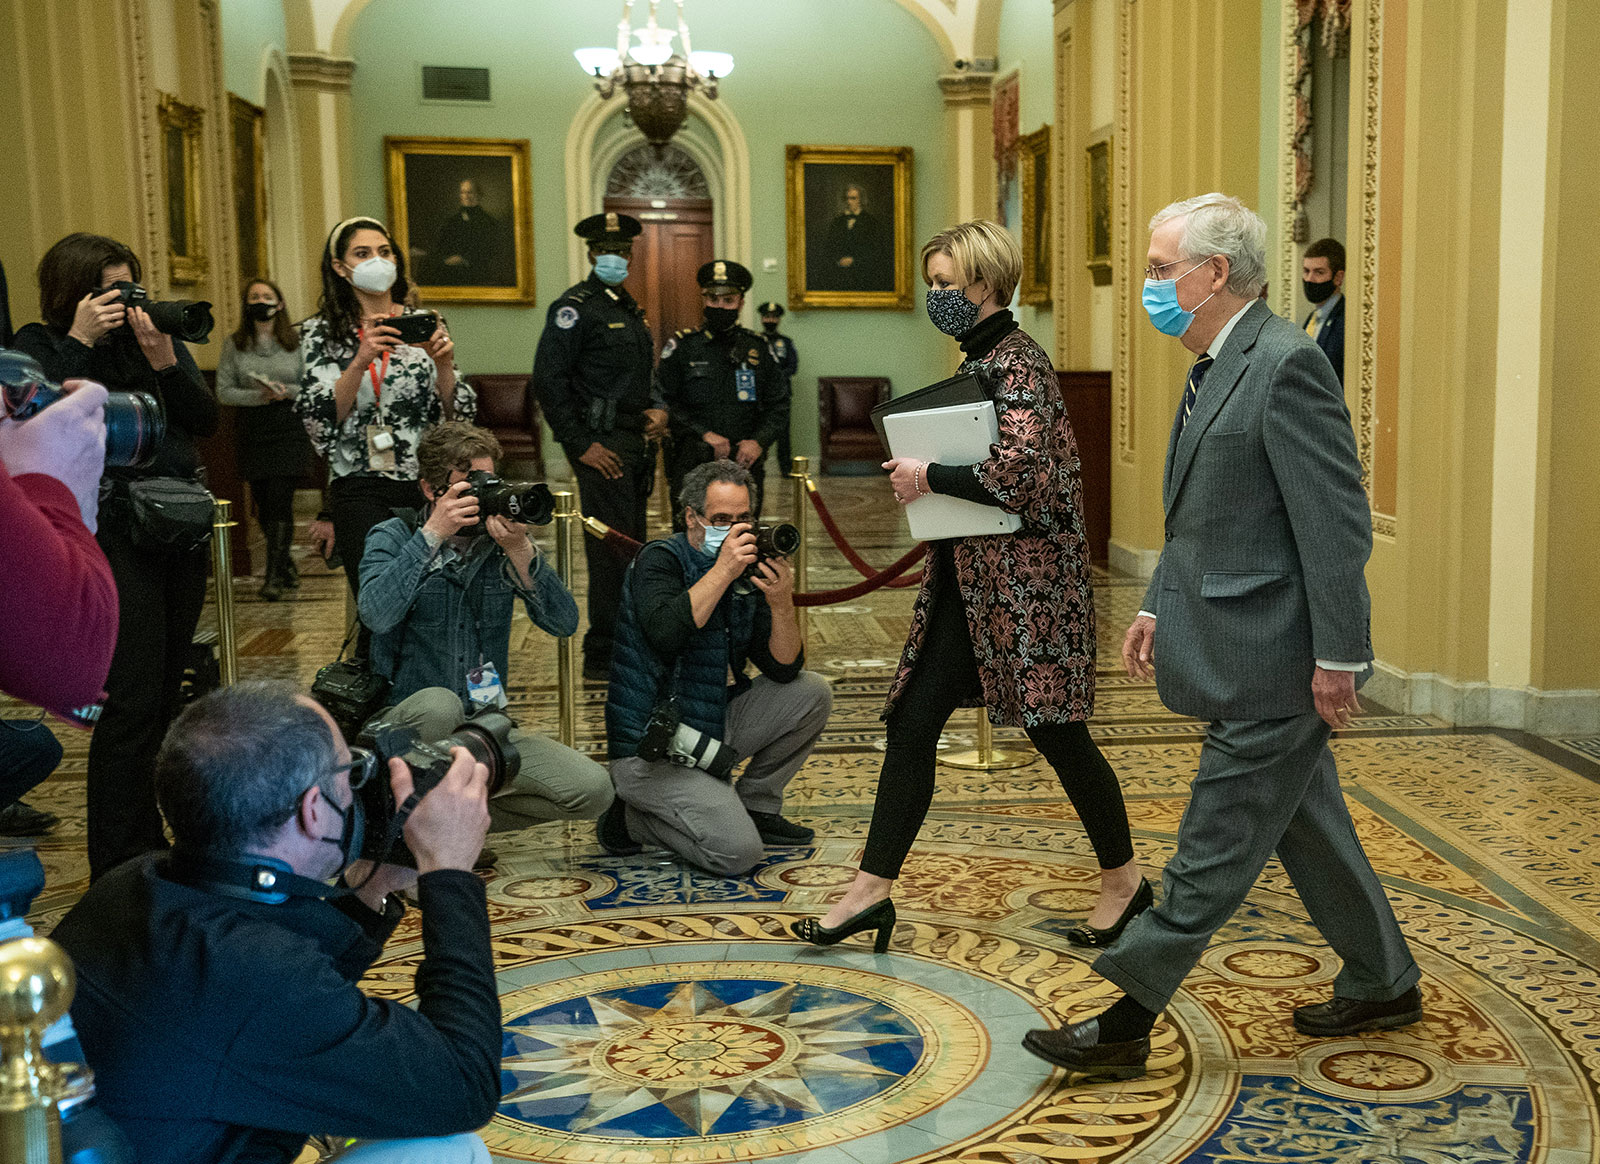 Senate Minority Leader Mitch McConnell arrives at the US Capitol on February 10.